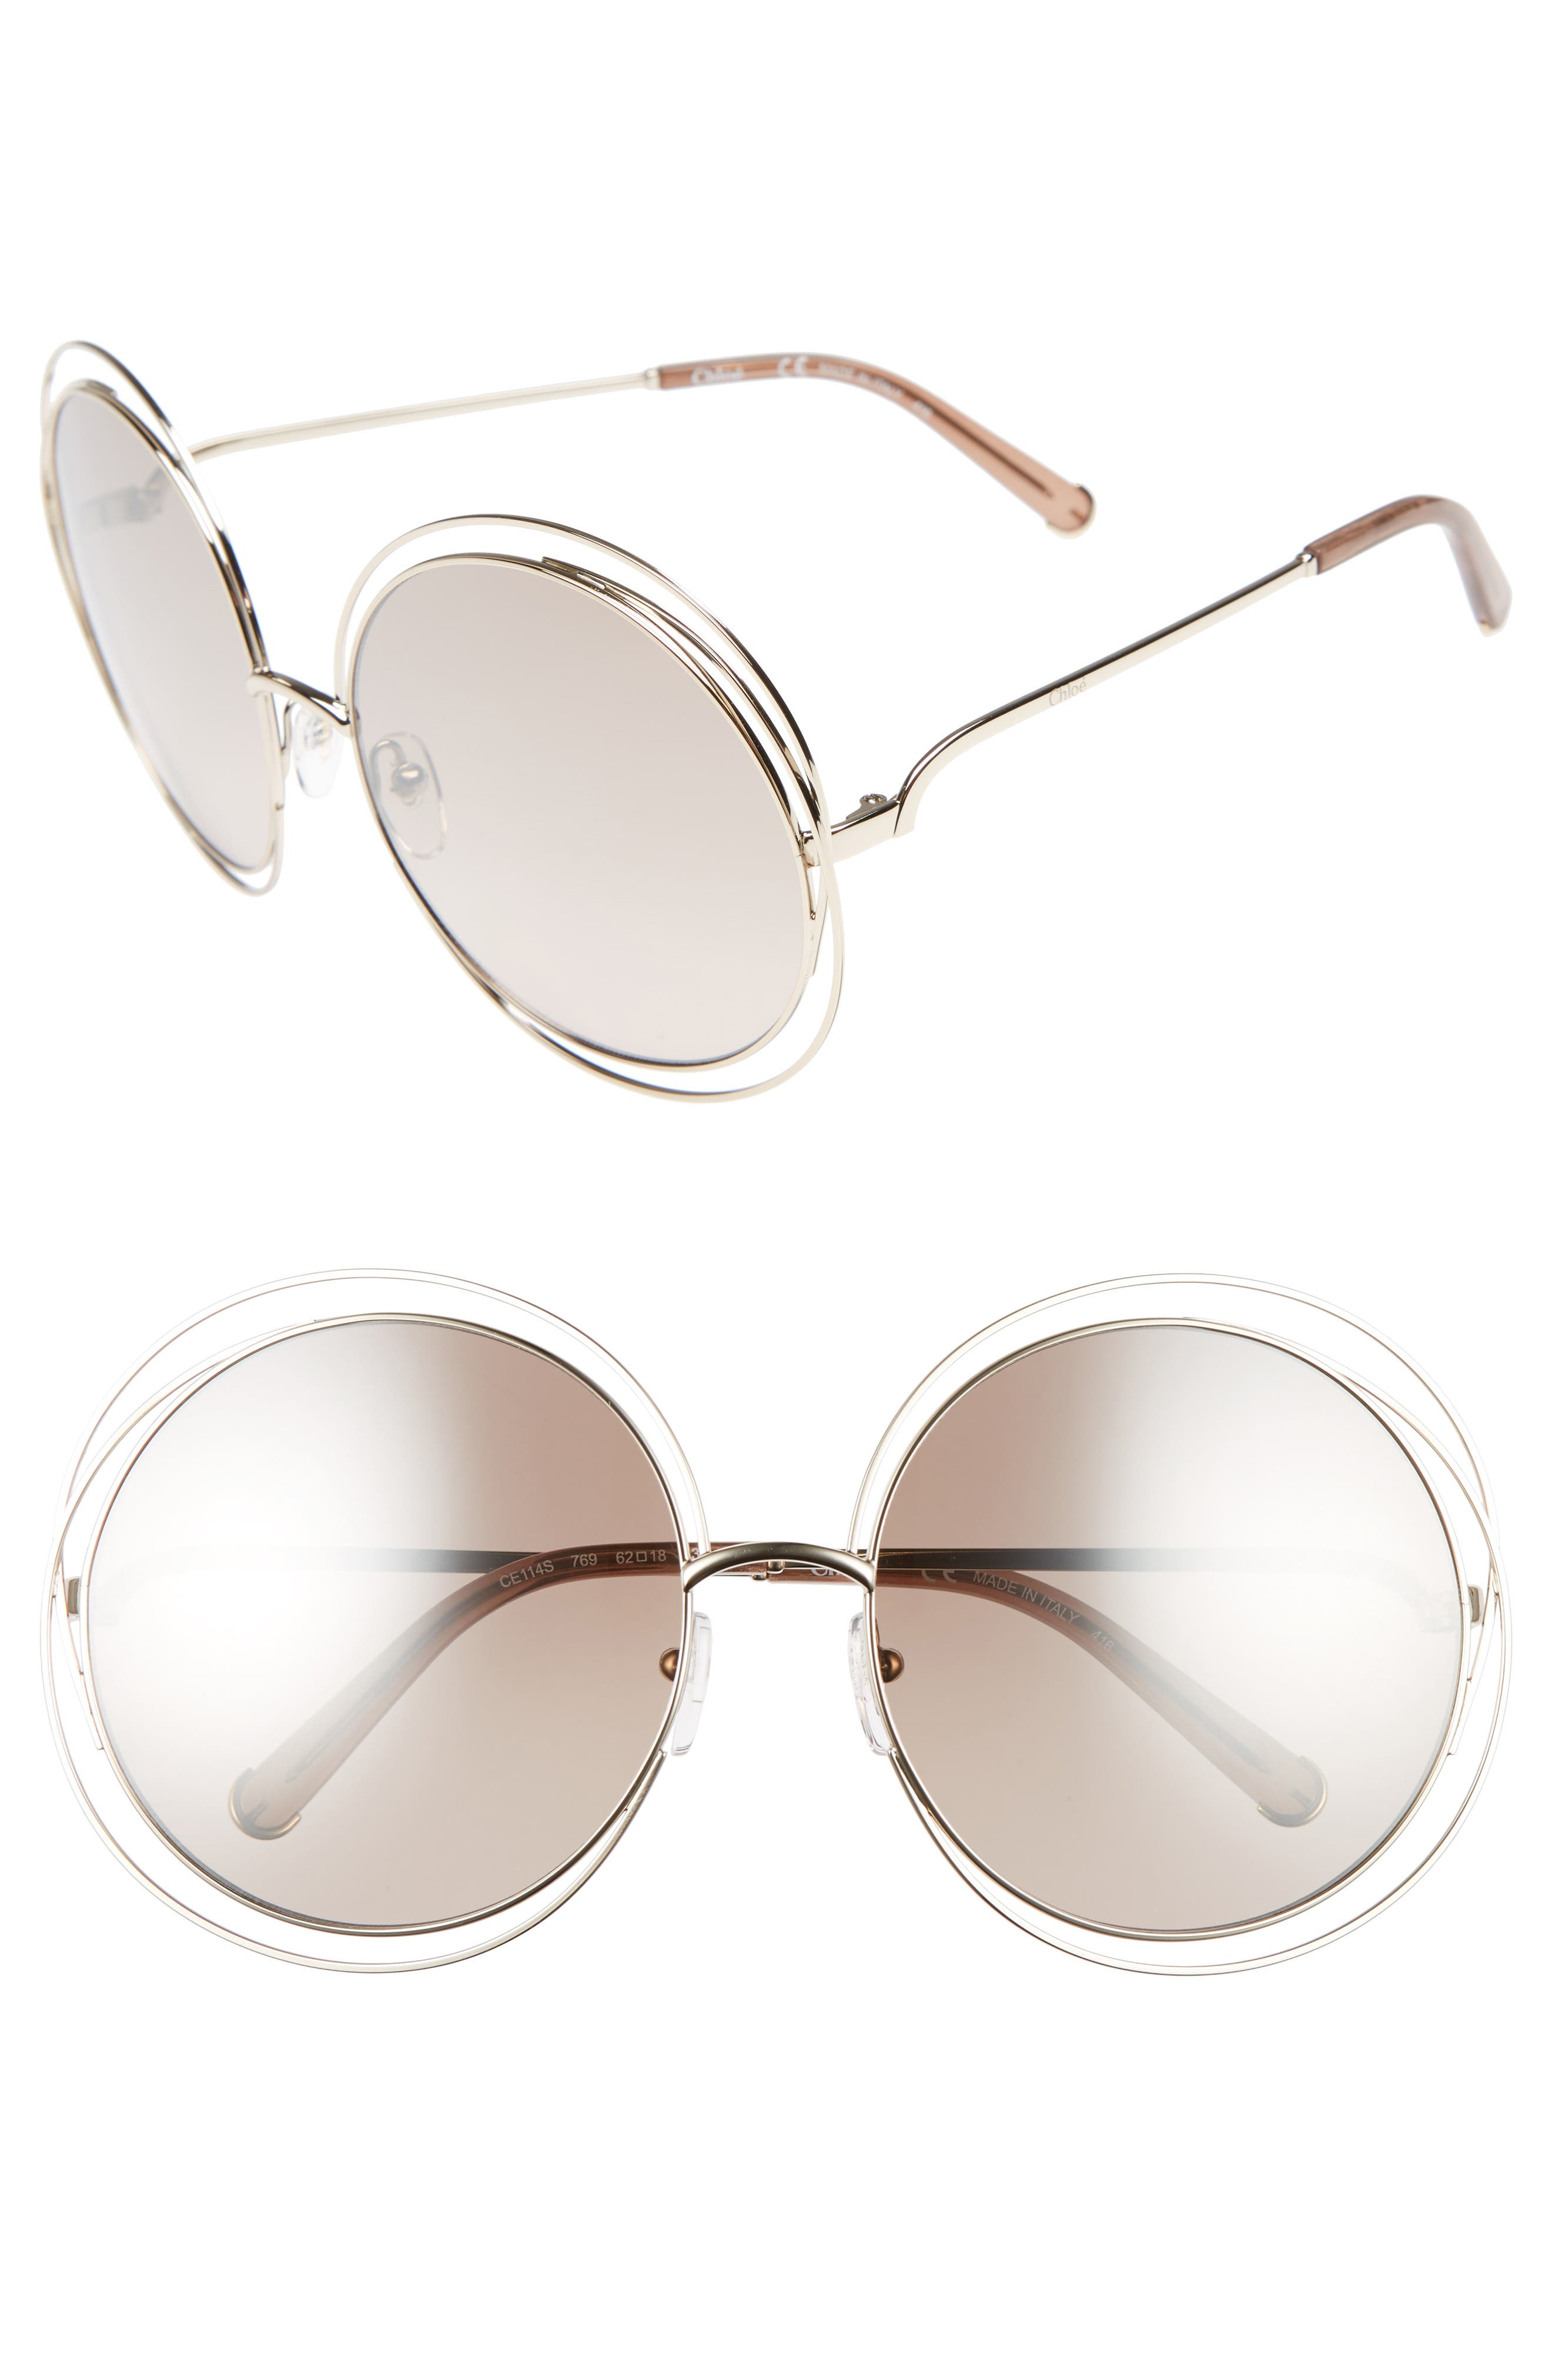 Chloe 62Mm Oversize Sunglasses - Gold/ Clear Brown